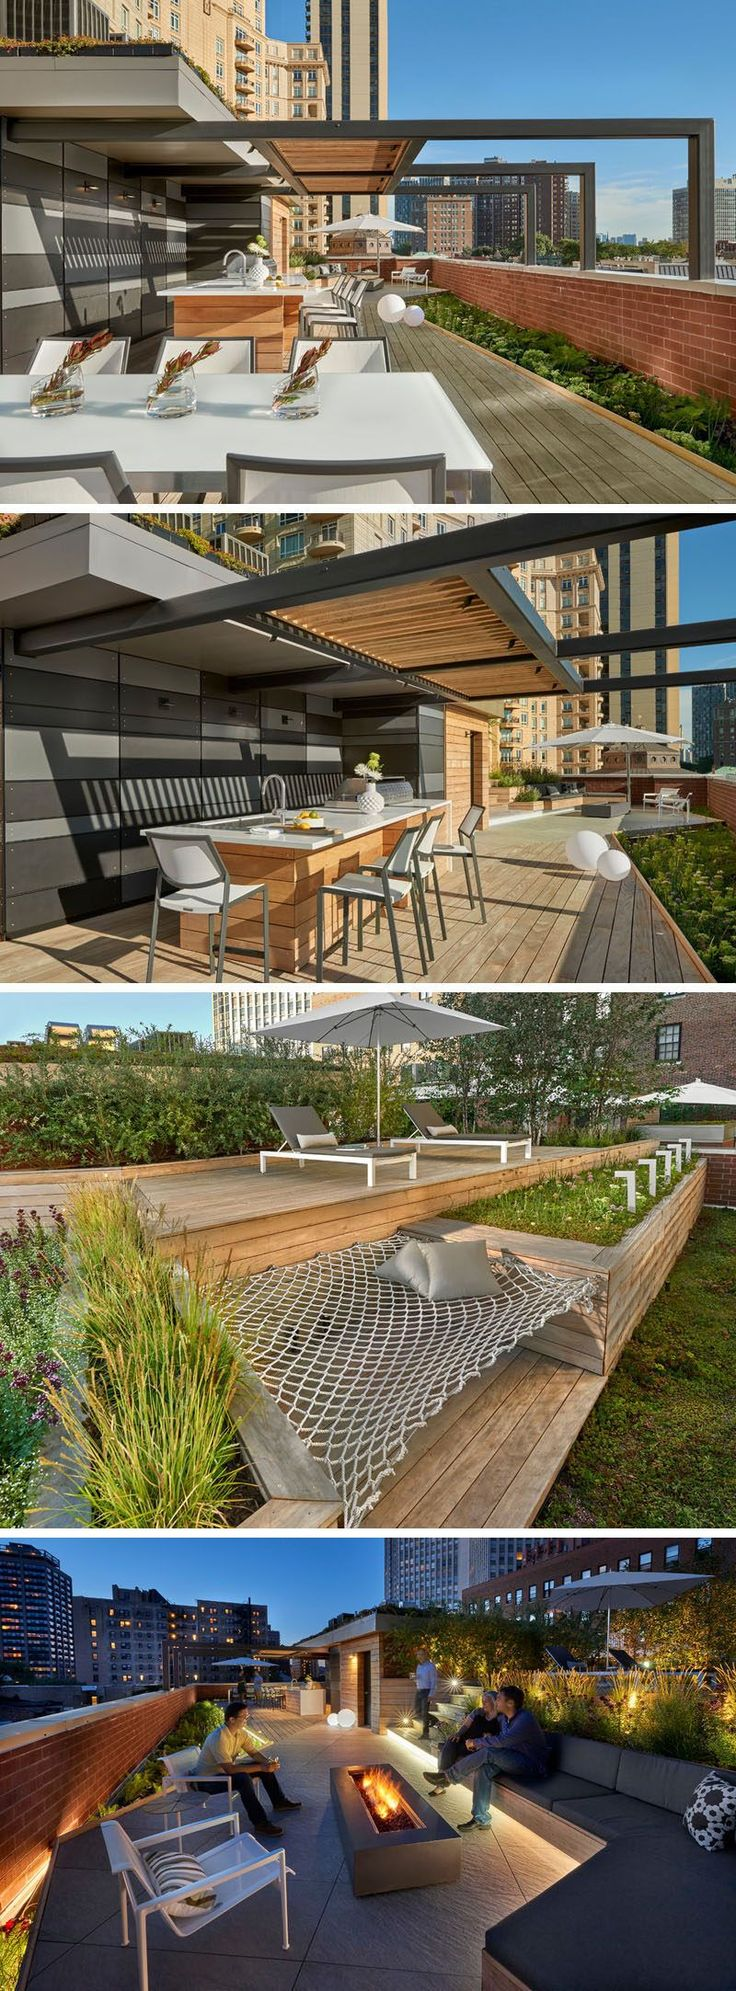 Nv united states rough in piping for outdoor island sink and bbq - These 10 Rooftop Decks Are Always Ready For Outdoor Entertaining